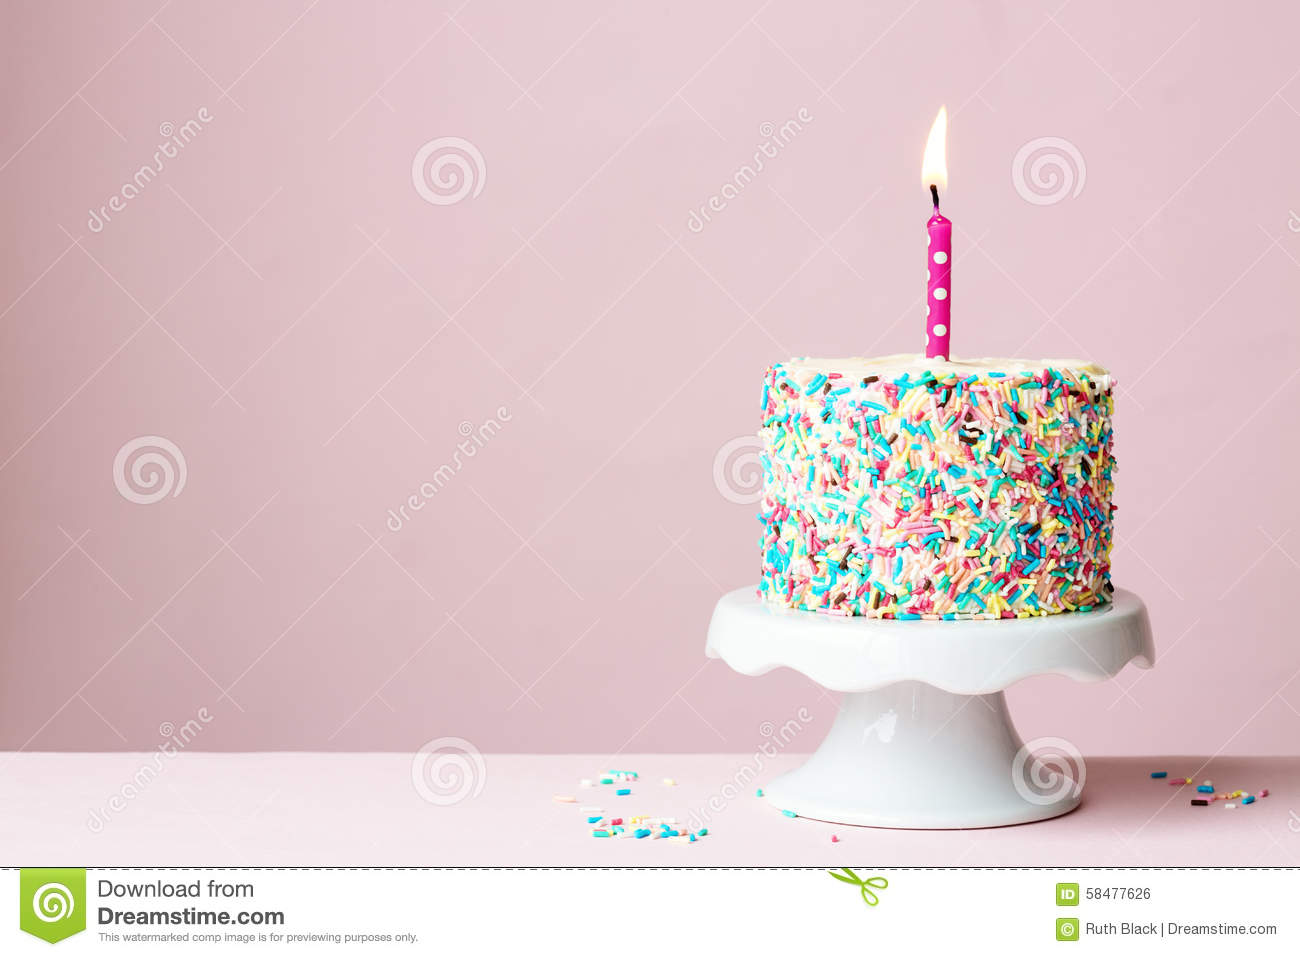 Birthday cake stock photo. Image of cakestand, against - 58477626